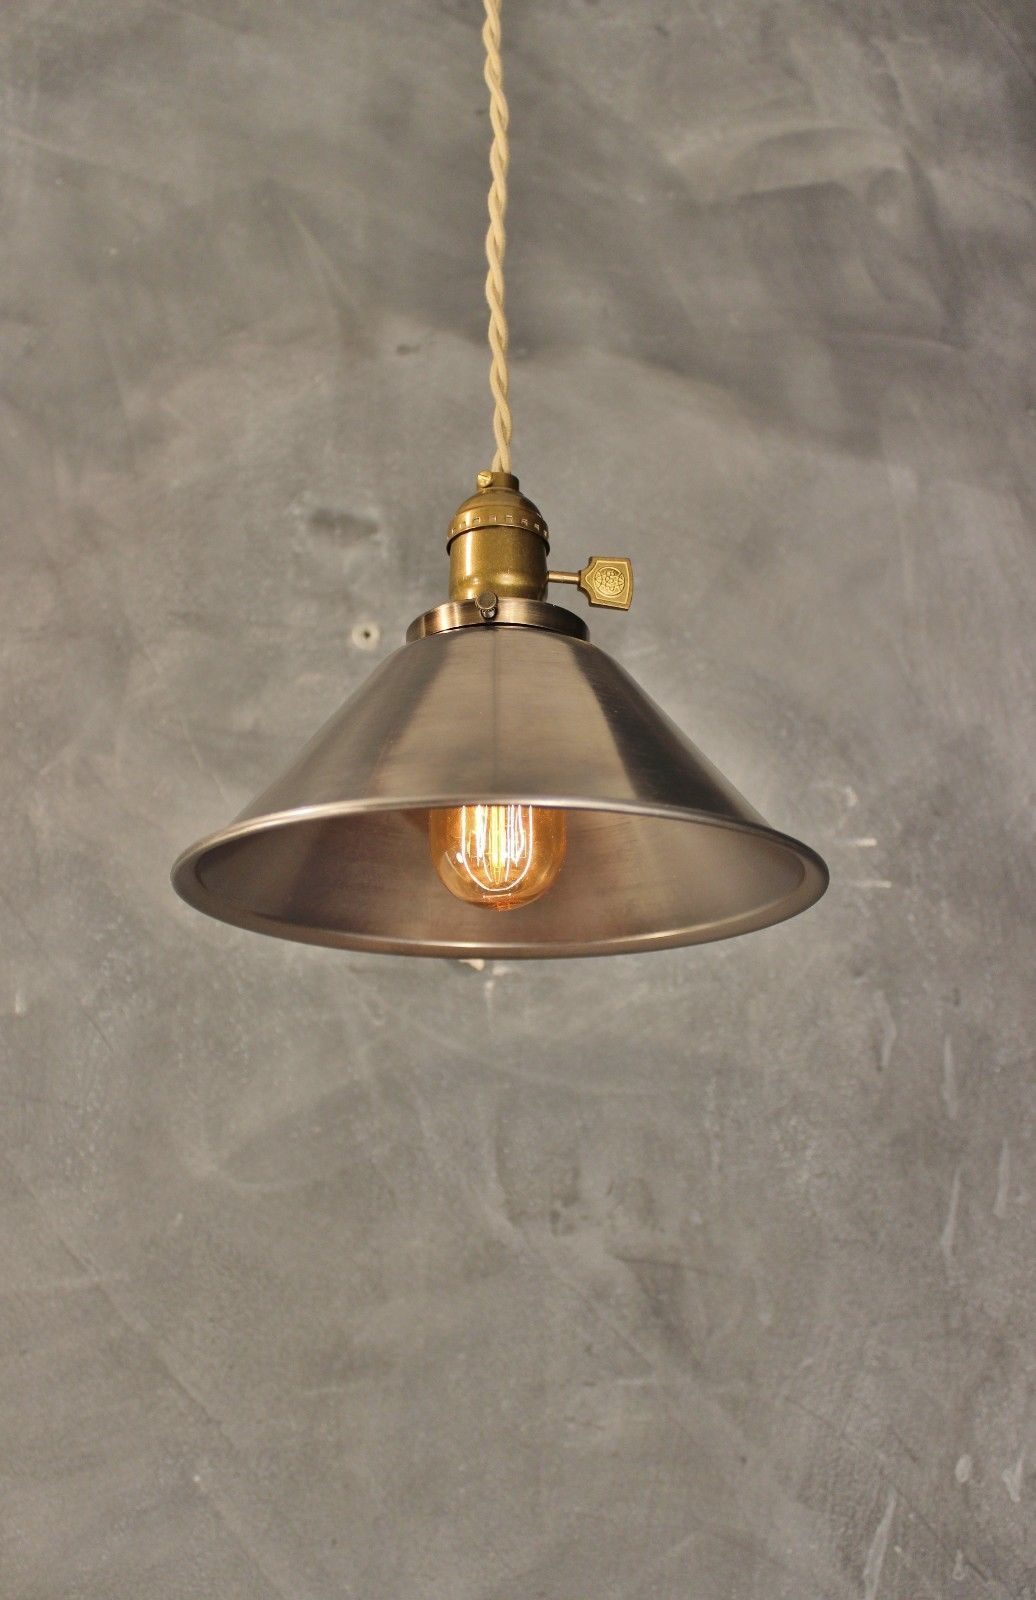 Steel Cone Pendant Lamp - Vintage Industrial Hanging Light | eBay